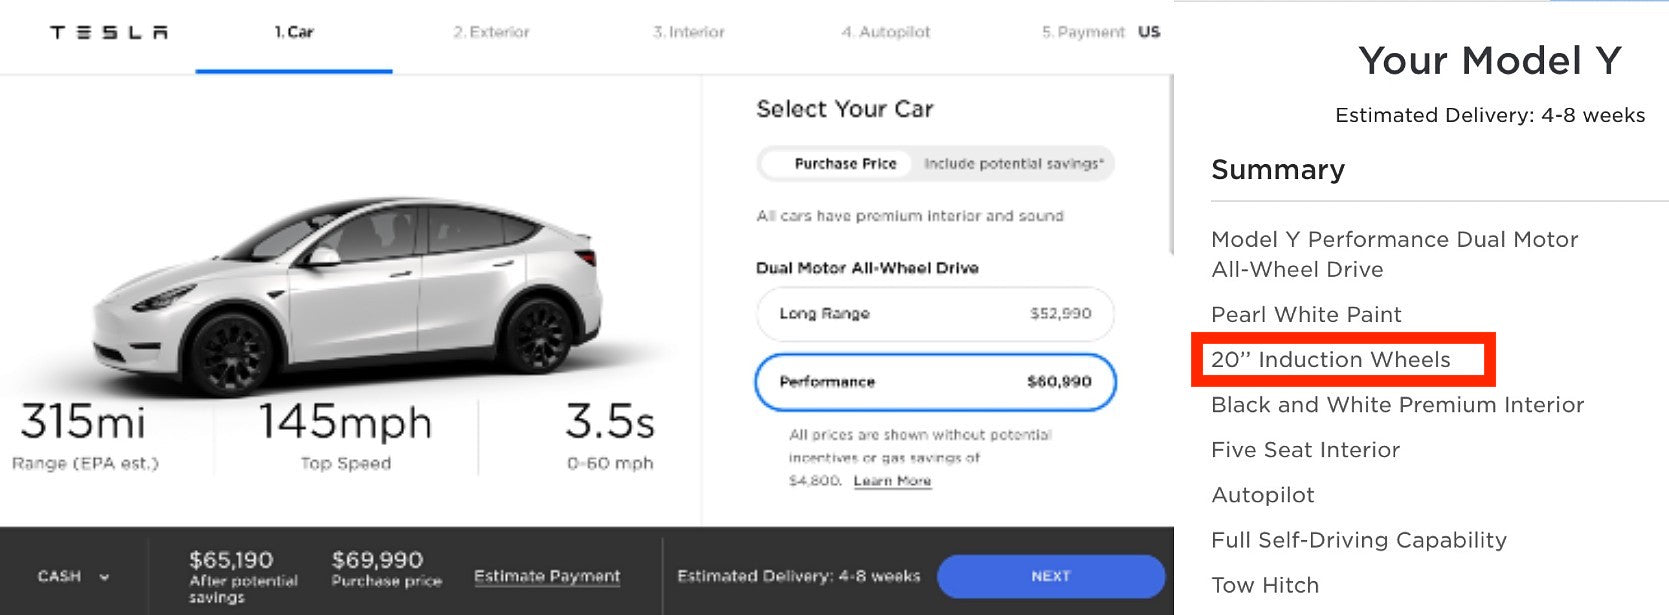 Tesla Model Y Performance With Induction Wheels Now Available & Ready To Deliver